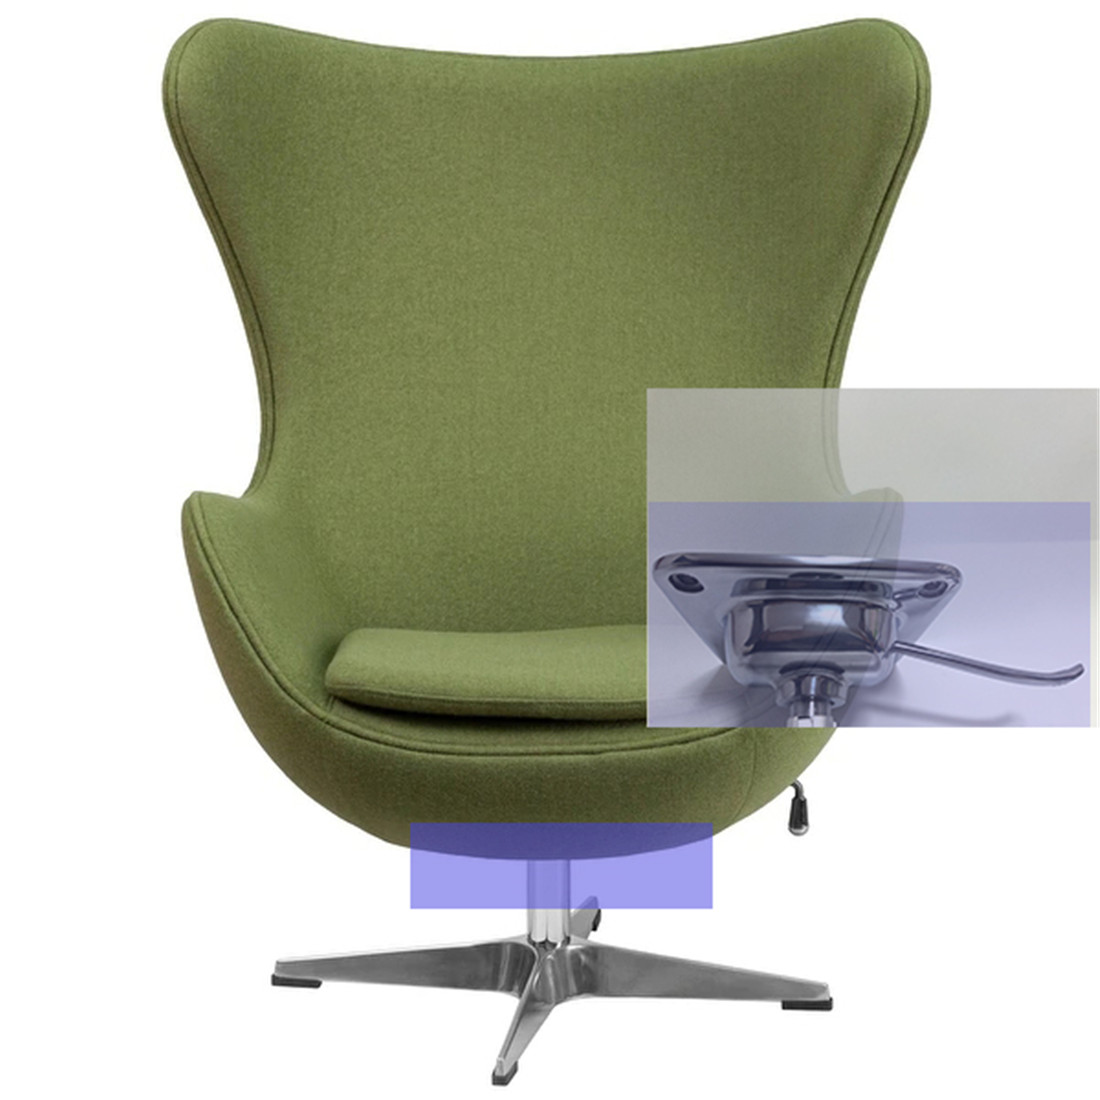 where to purchase office revolving chair mechanism accessories